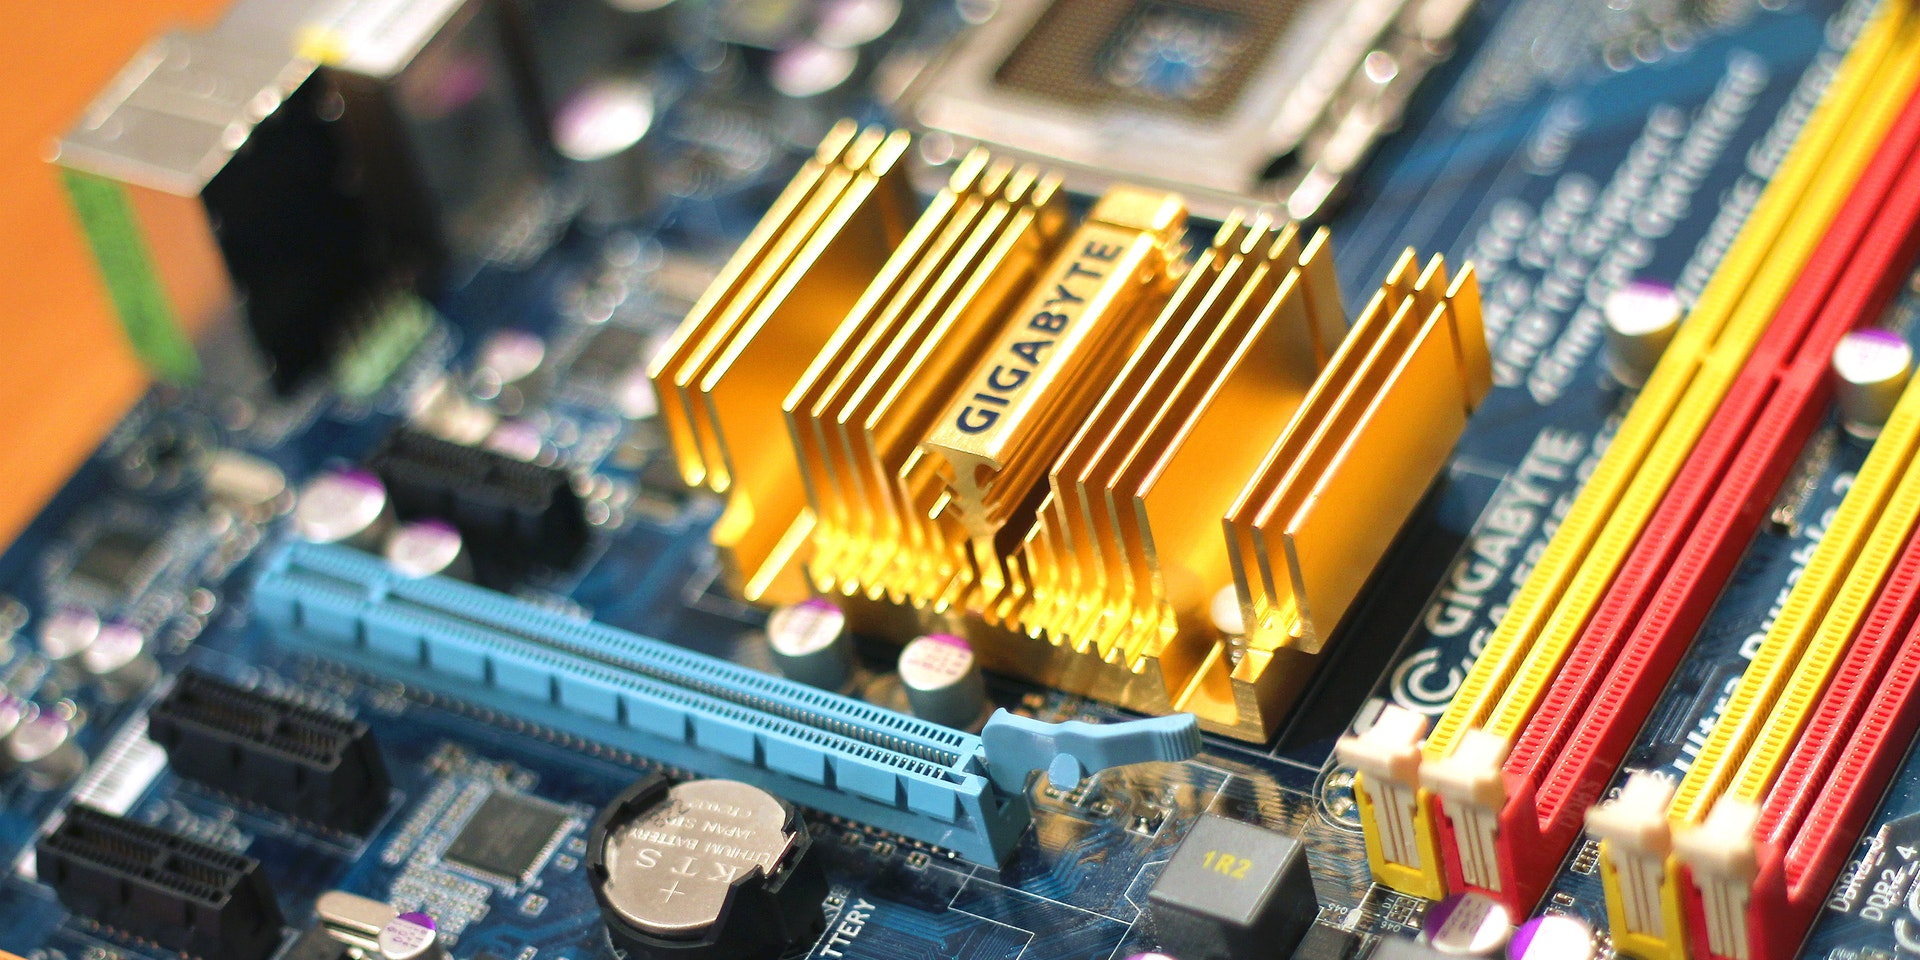 Motherboard picture for information technology